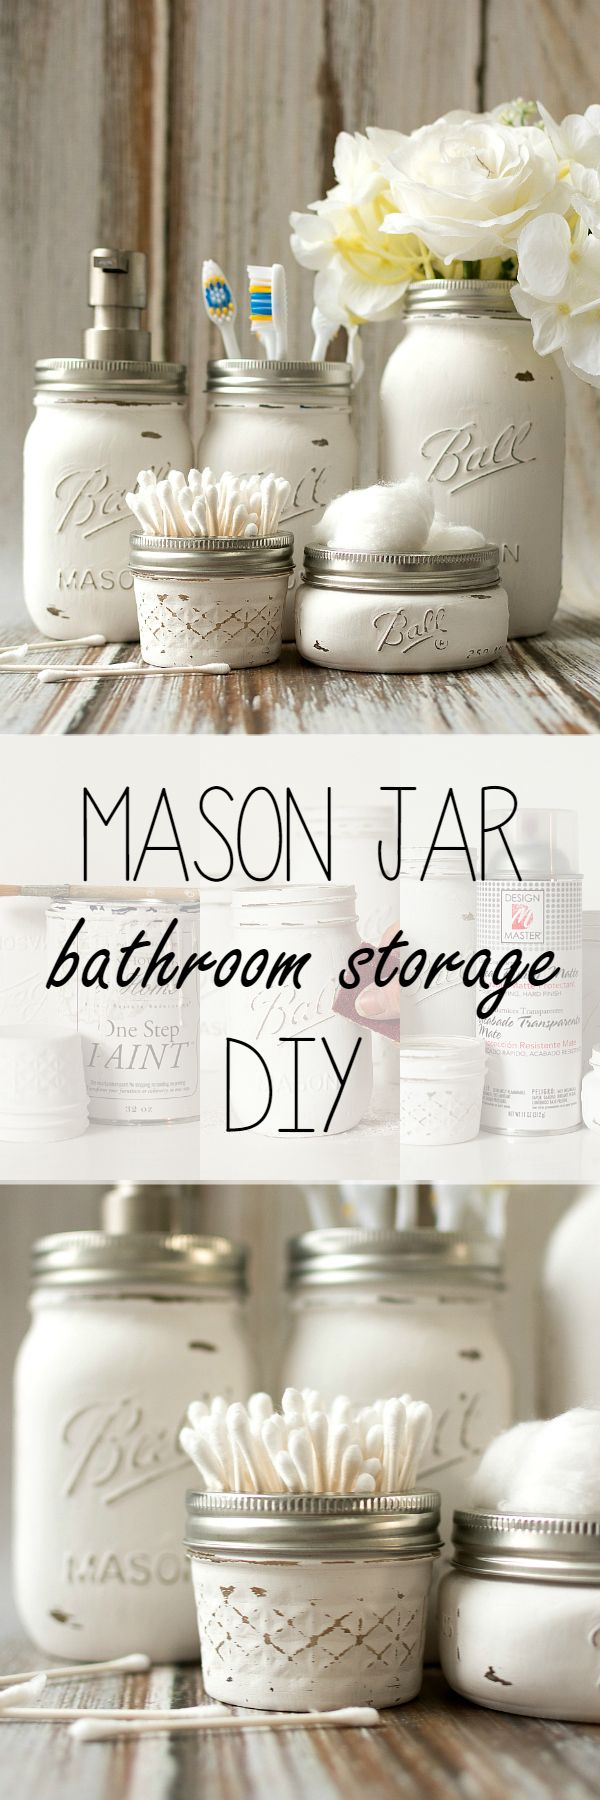 Decorated Mason Jars For Sale 11801 Best Mason Jar Crafts Images On Pinterest  Mason Jar Crafts